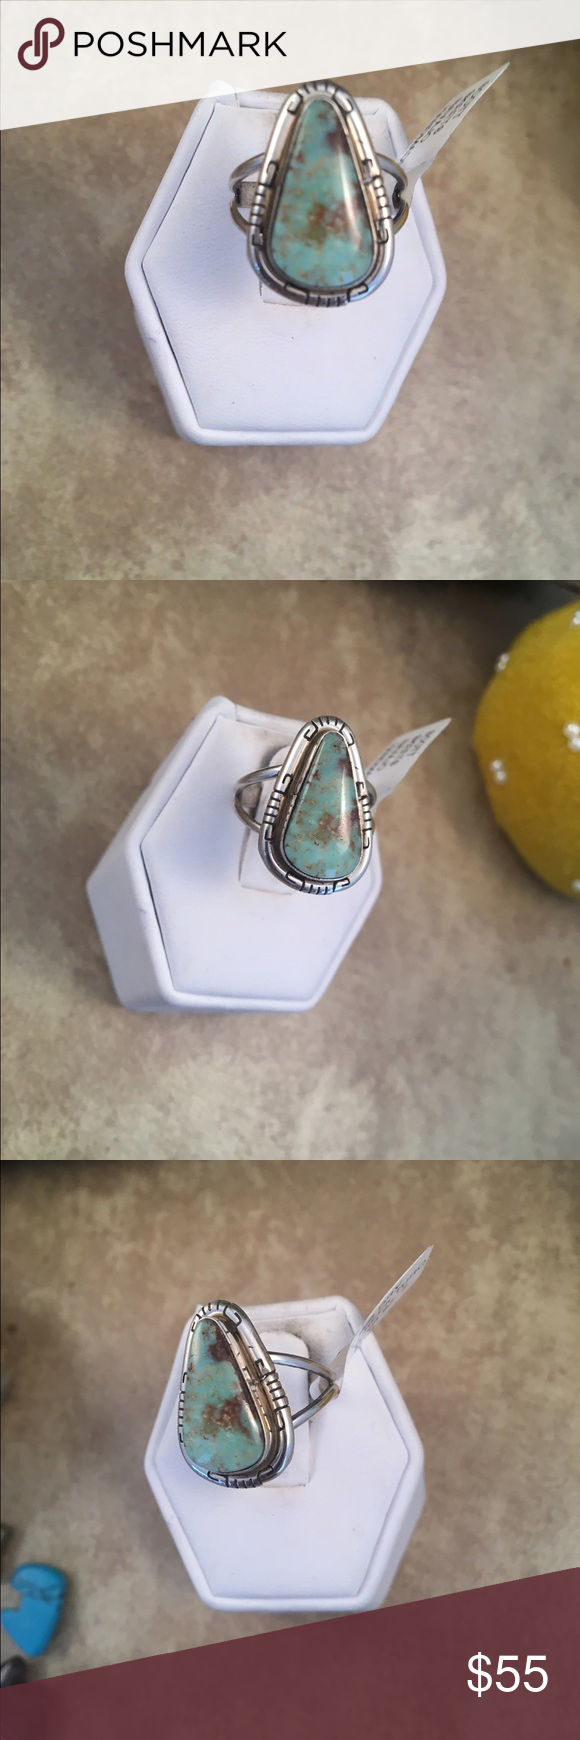 Navajo Dry Creek Turquoise Ring Size 7 This is a wonderful piece made by Scott Skeets it is made of Sterling Silver and Dry Creek Turquoise. This ring is size 7 and is right at 7/8 of a inch long and just under 5/8 of a inch wide. This piece is signed by the artist and stamped sterling.   Please contact me with any questions and thank you for looking. Jewelry Rings